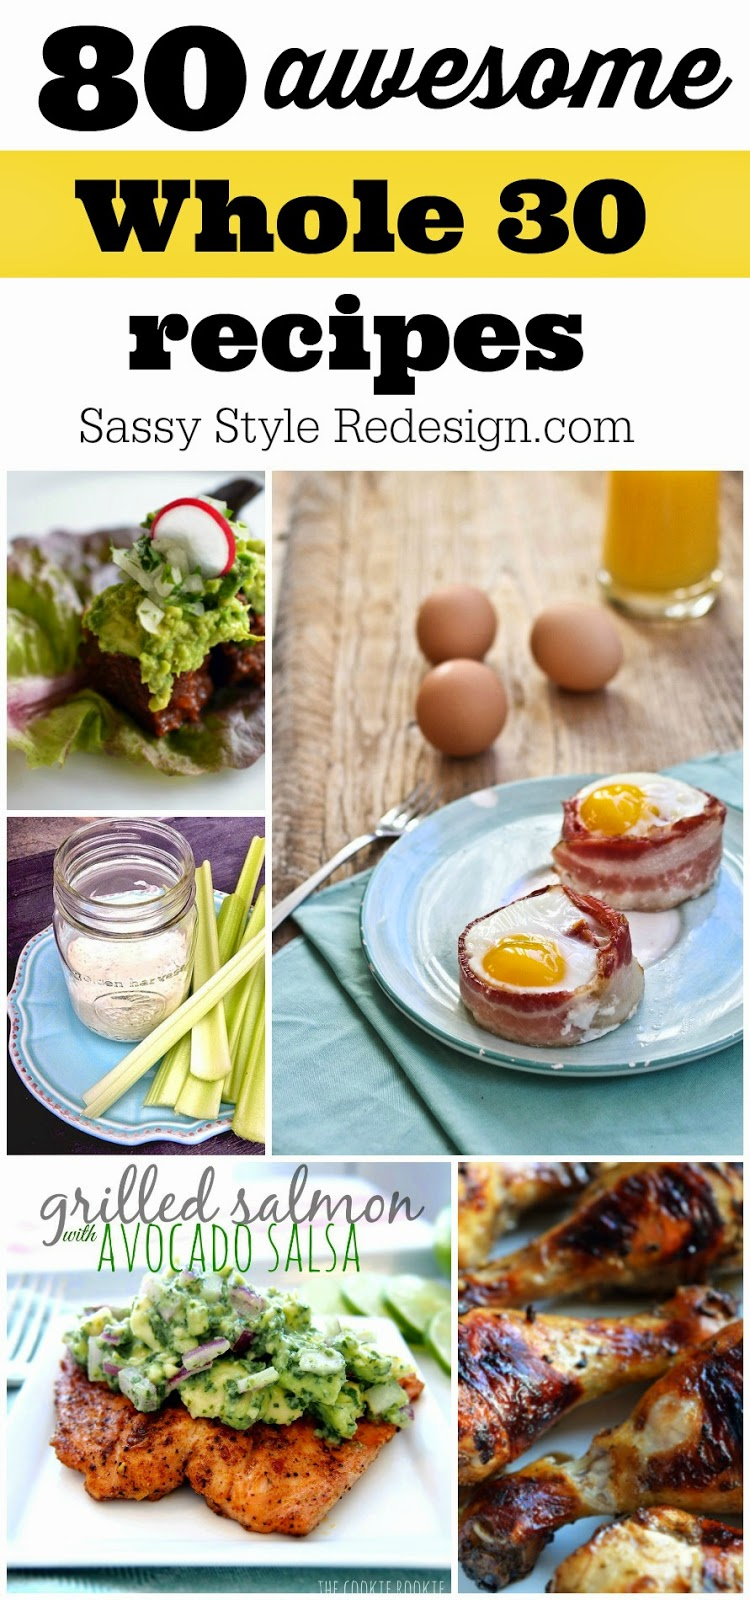 http://www.sassystyleredesign.com/